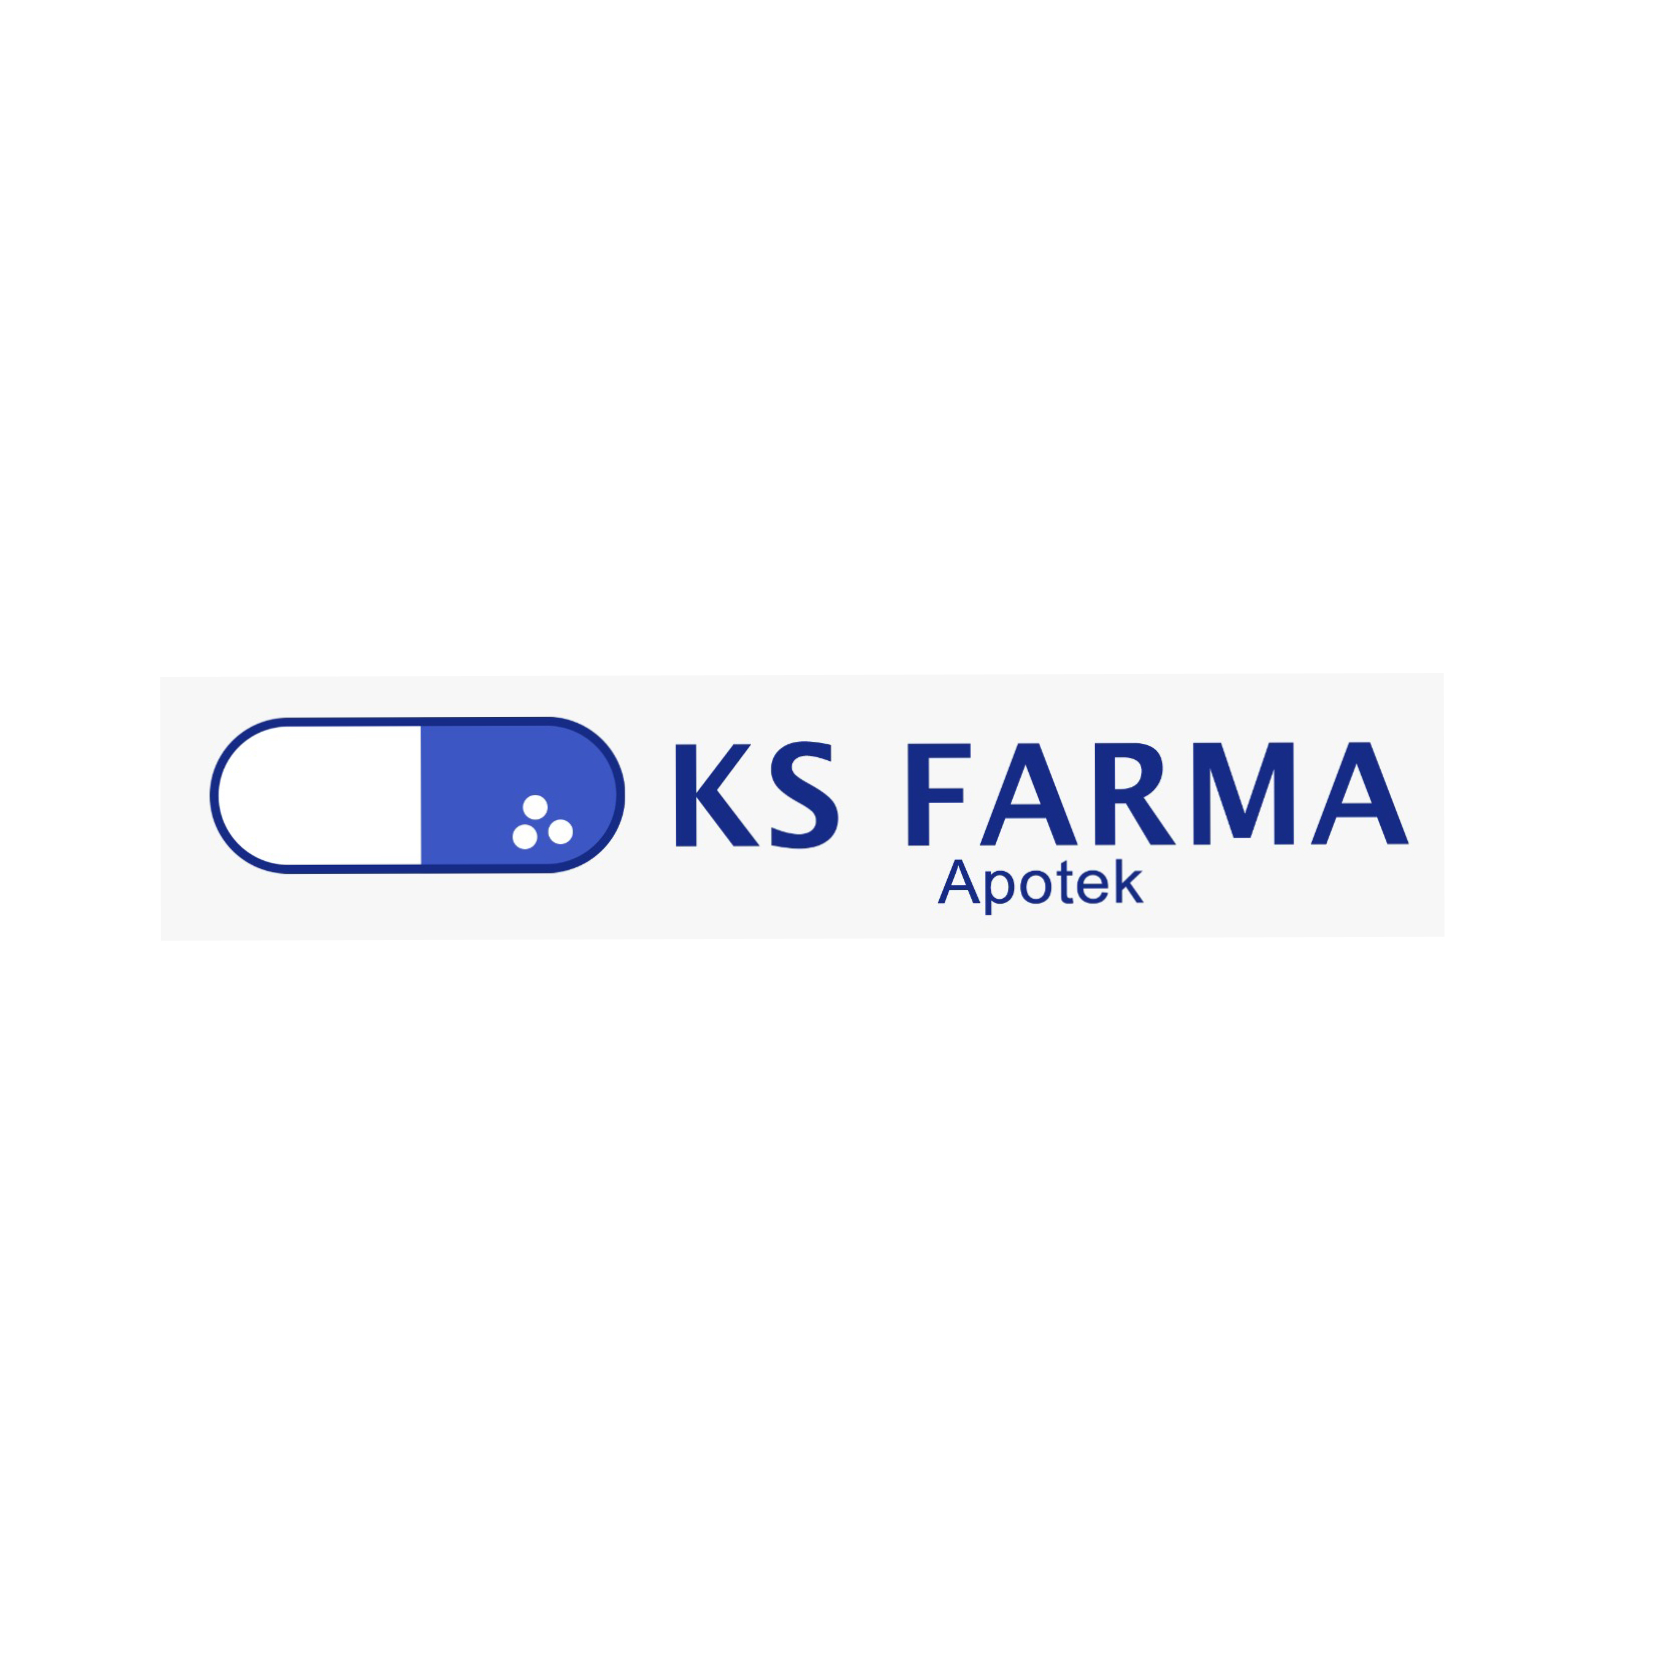 Apotek KS Farma